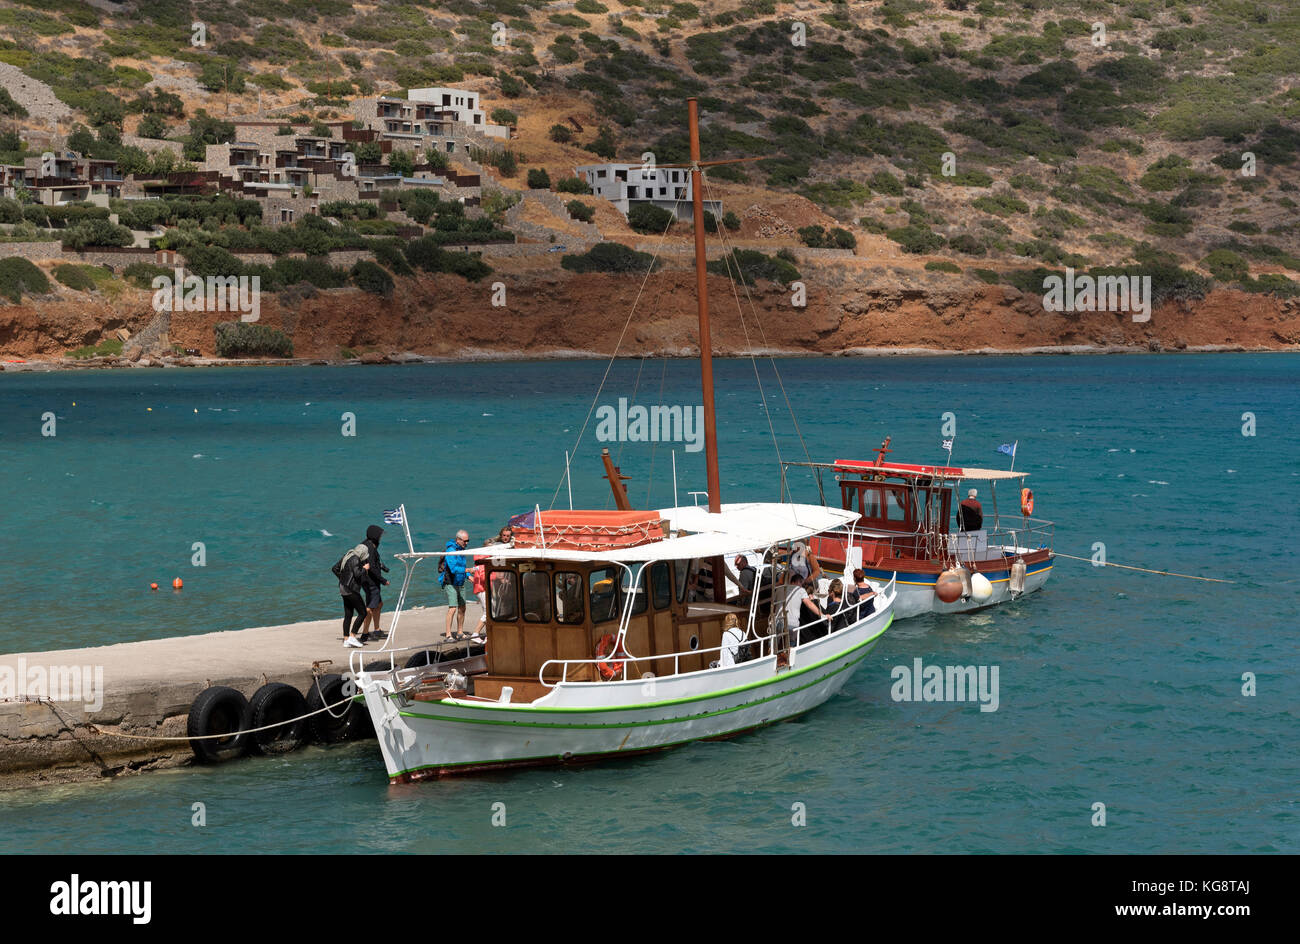 The seaside resort of Plaka with passengers boarding a small ferry to Spinalonga Island, former Leper Colony. Northern - Stock Image